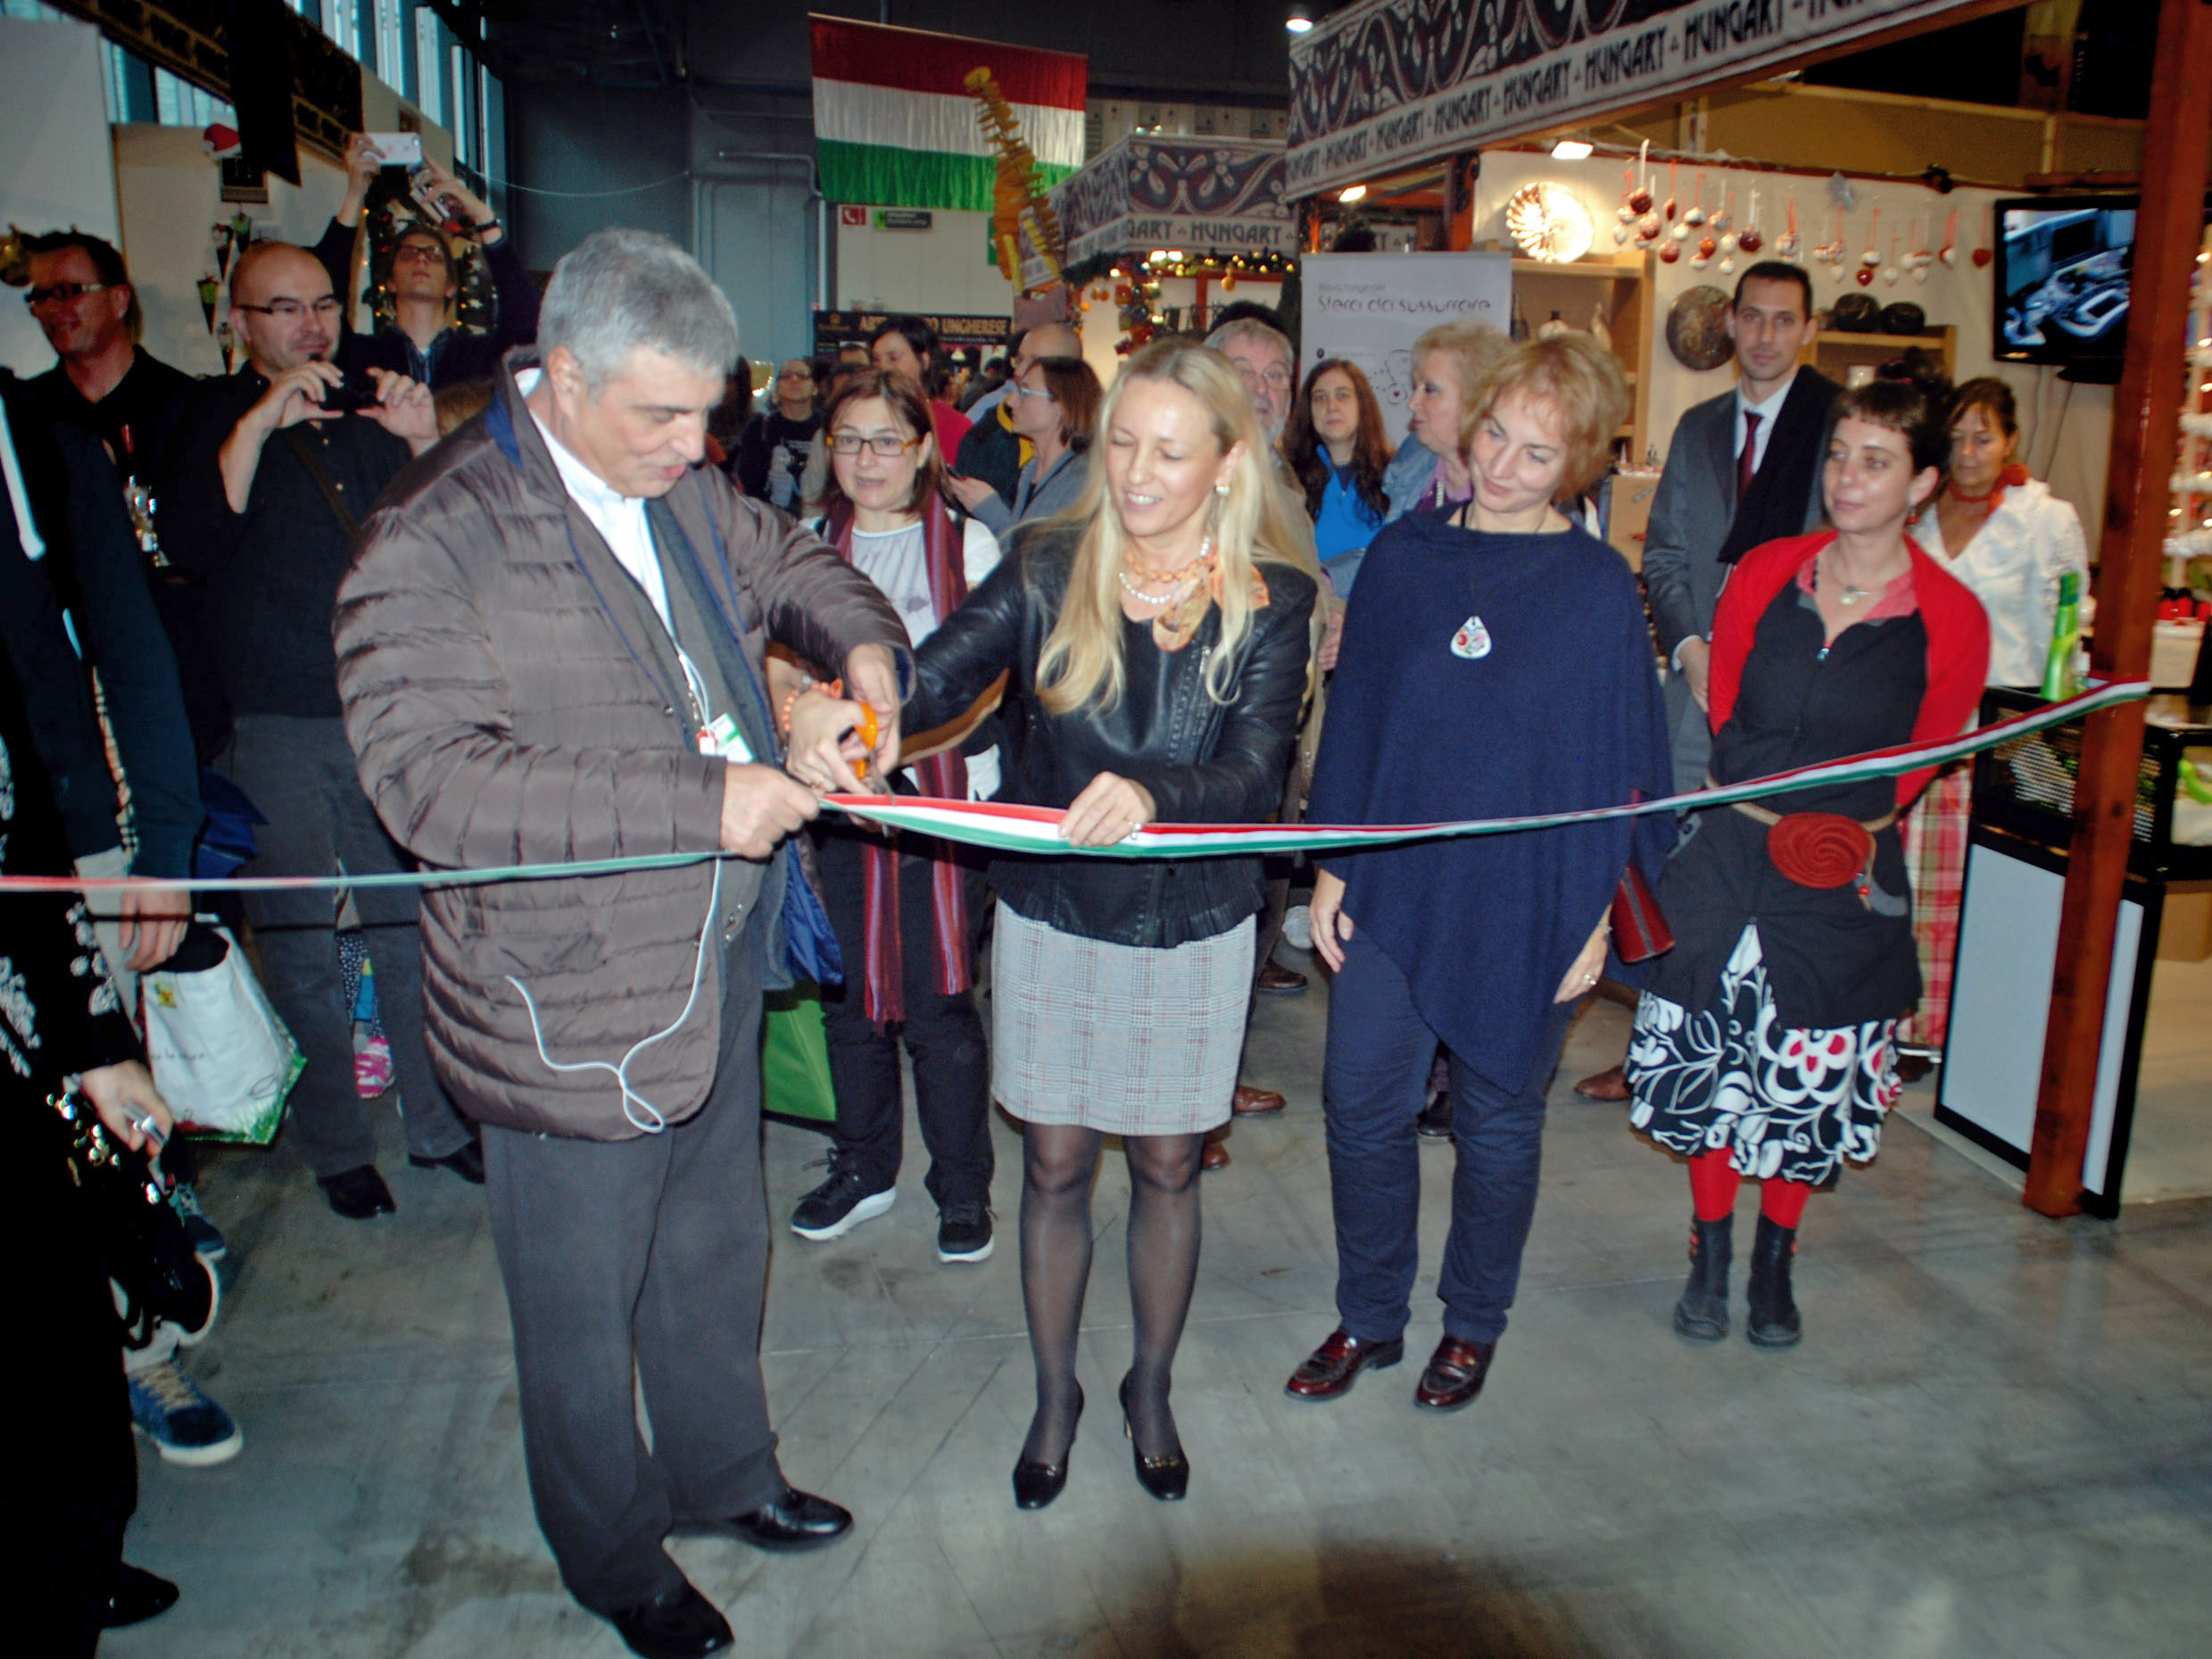 Opening - L'Artigiano in Fiera: Exhibition and Fair in Milan